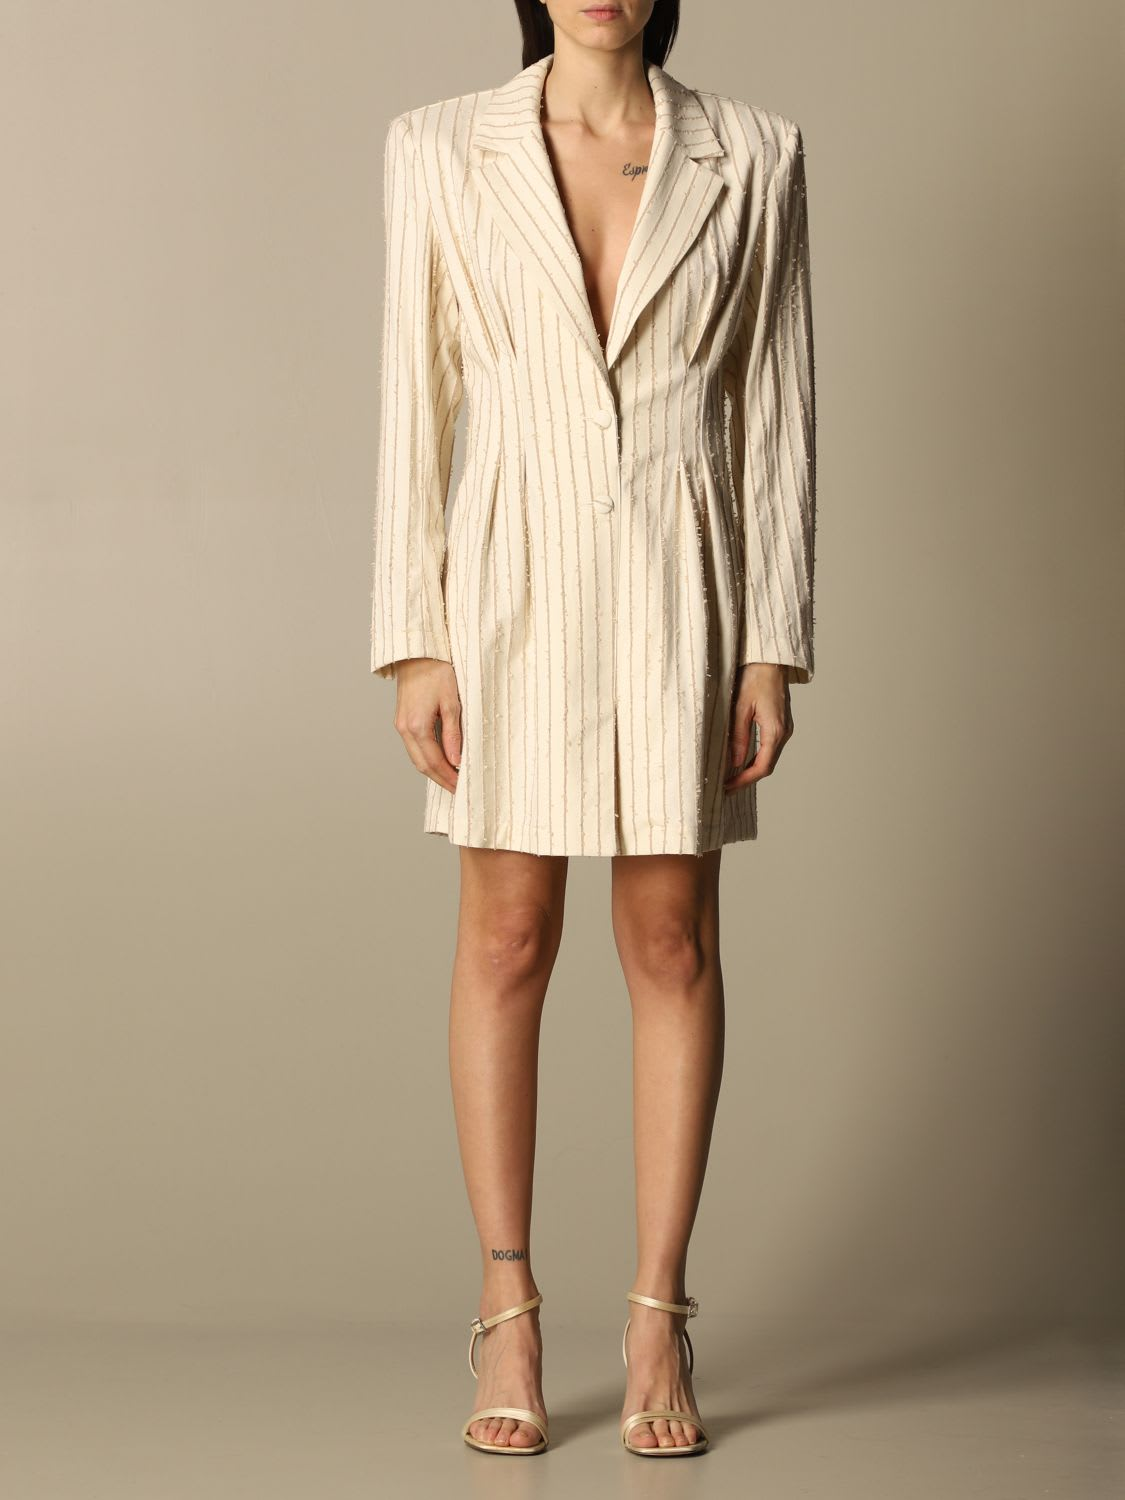 Buy Federica Tosi Dress Long Sleeve Pinstripe online, shop Federica Tosi with free shipping